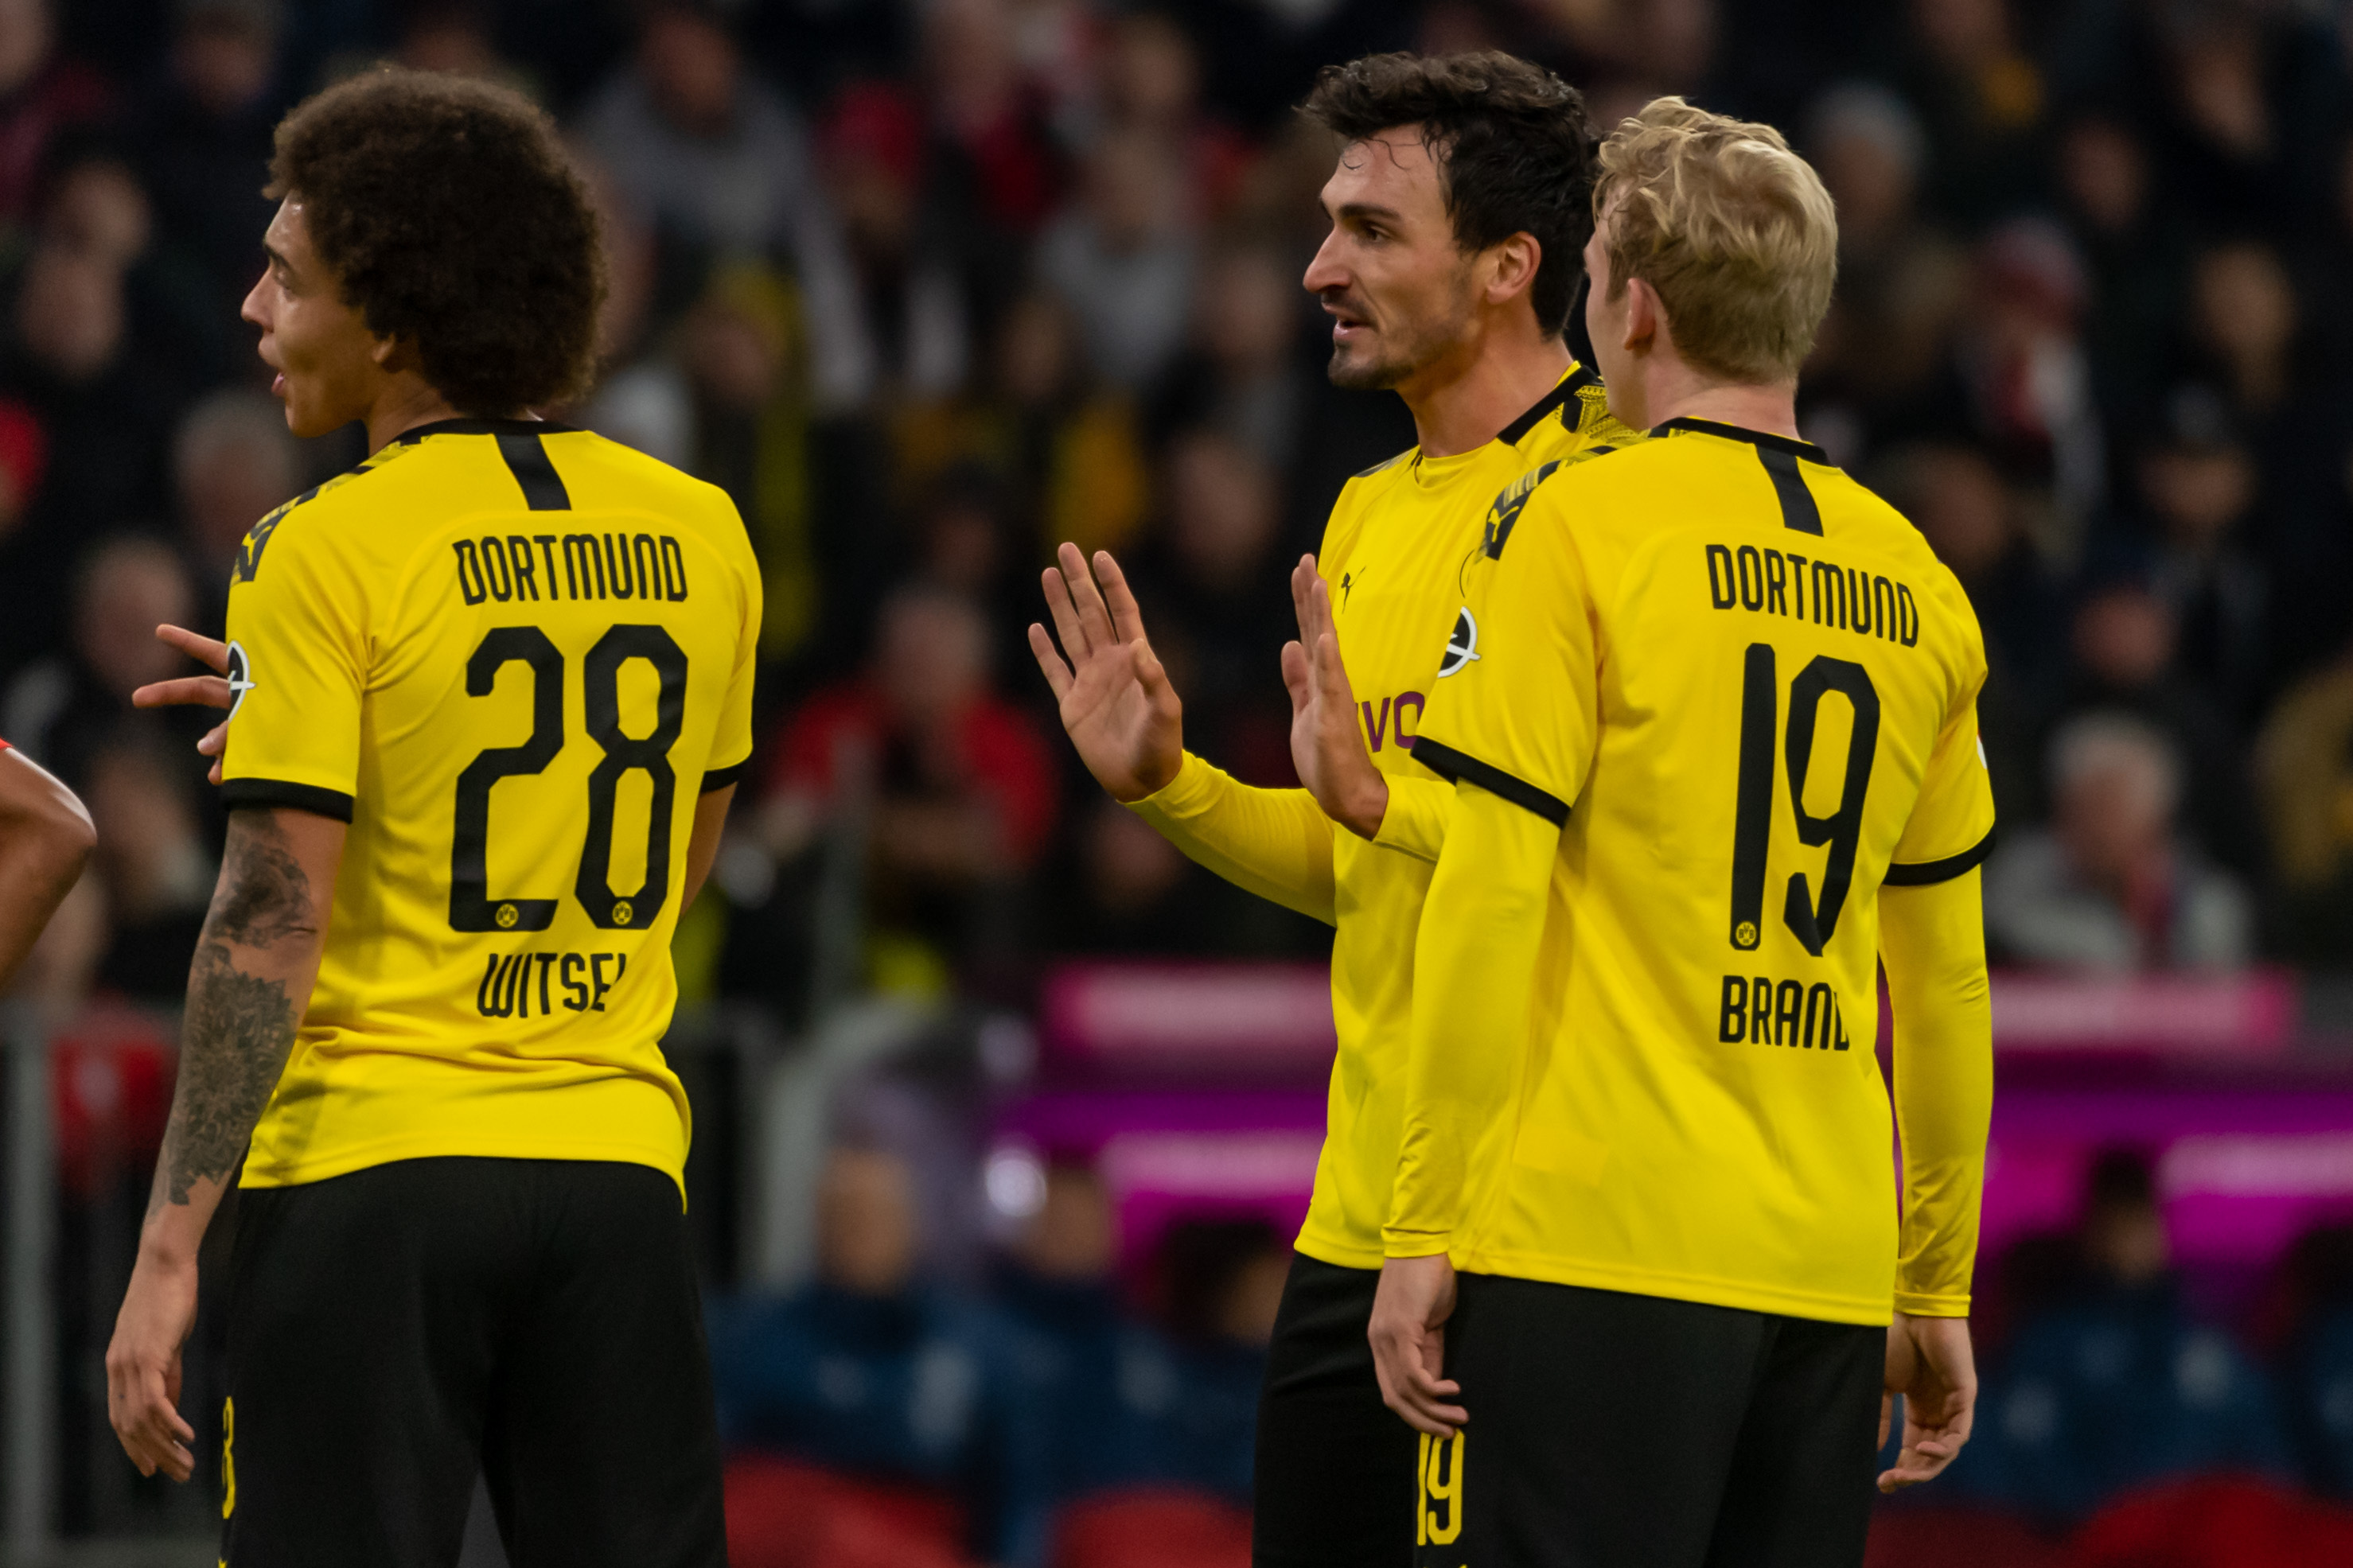 Bvb 2025 Borussia Dortmund S Plans To Future Proof Their Transfer Tactics Bleacher Report Latest News Videos And Highlights